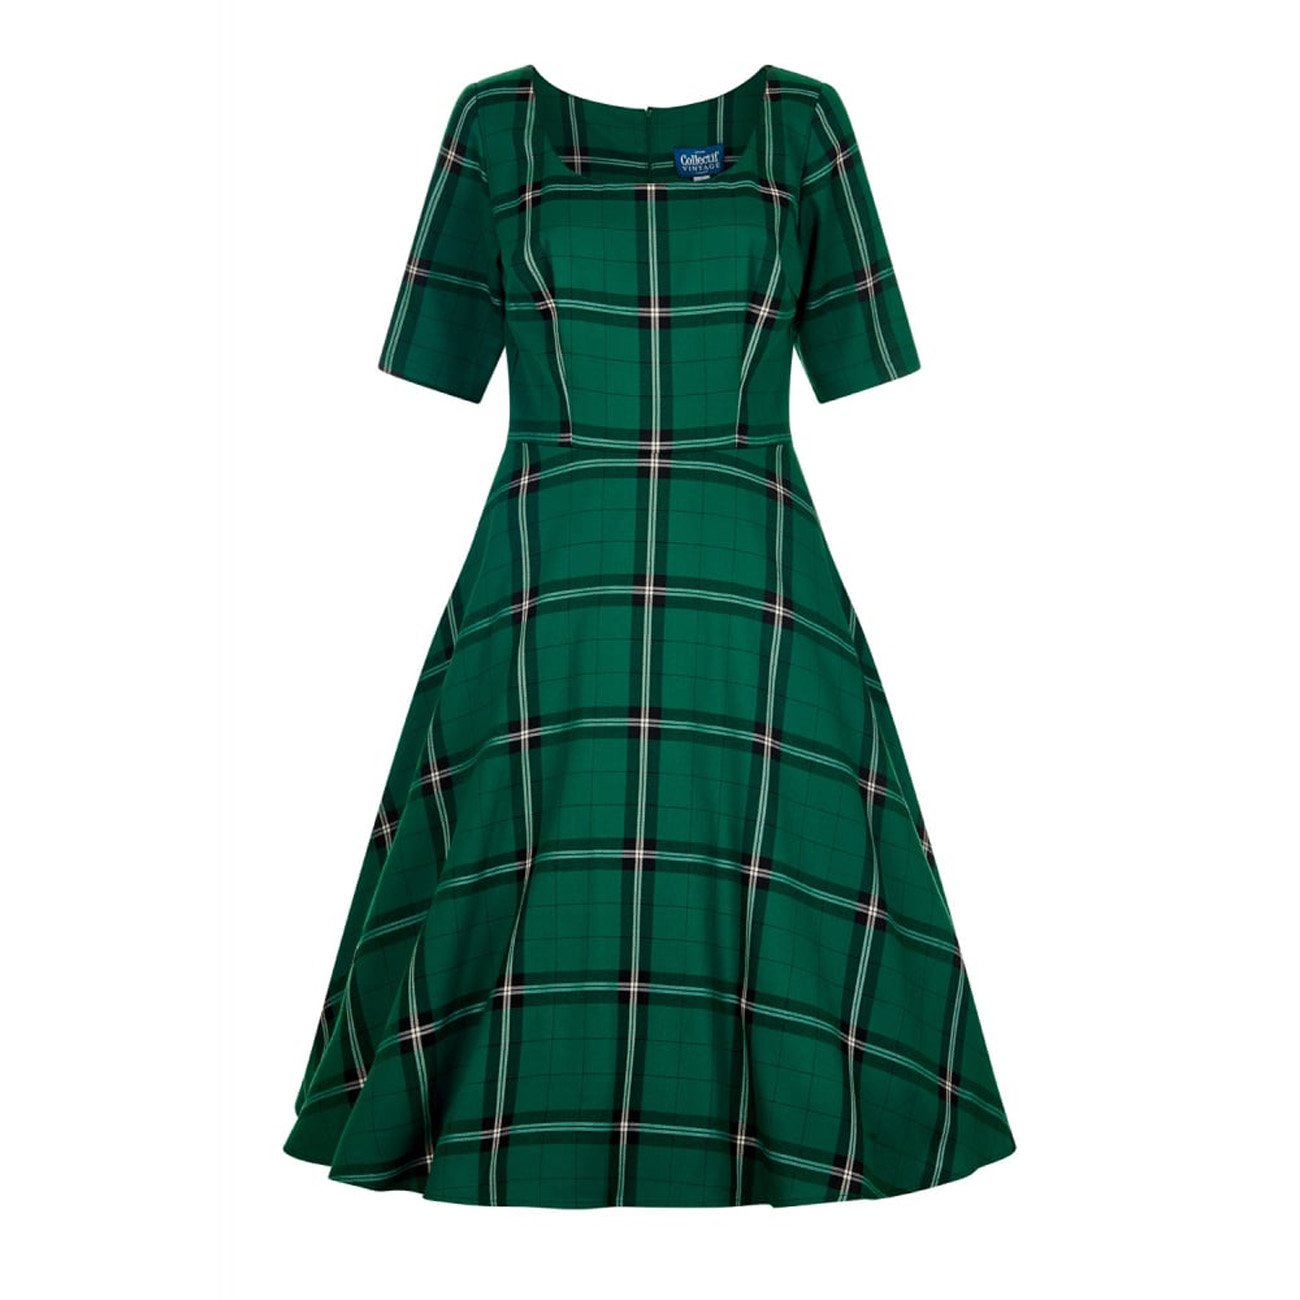 0a042481e235 Collectif Vintage Women s Amber Evergreen Print Swing Dress  Amazon.co.uk   Clothing